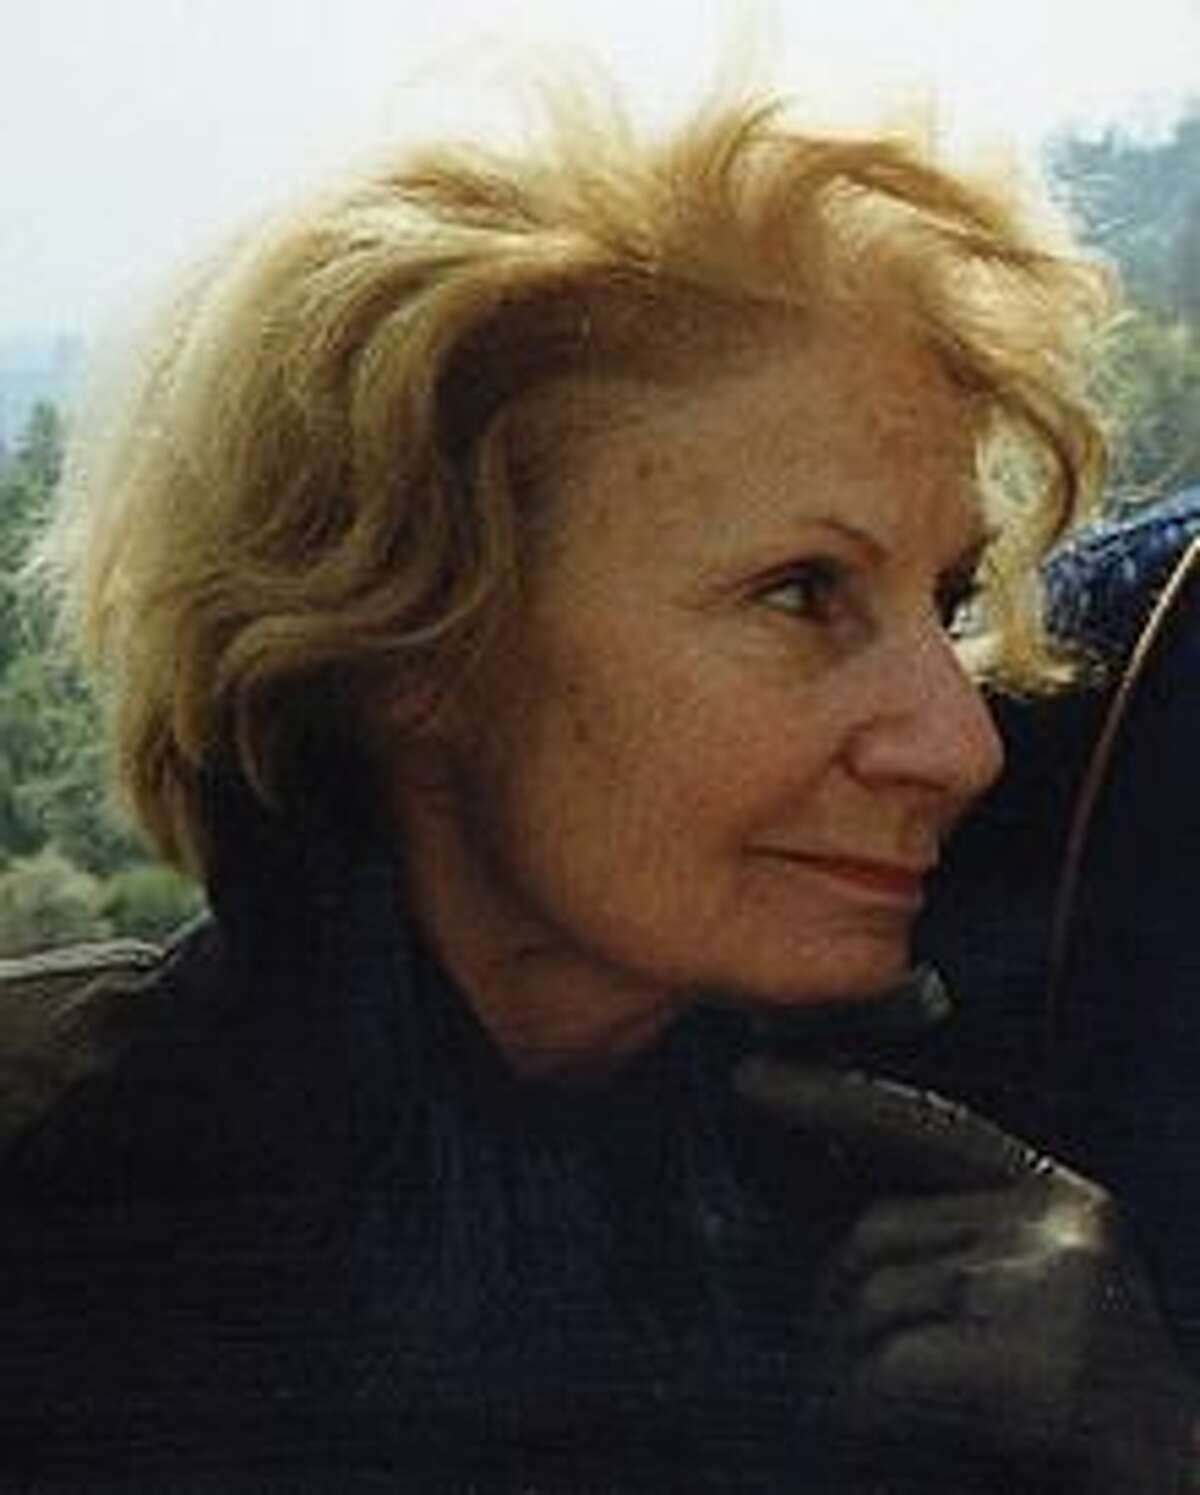 Czech writer Heda Margolius Kovaly's writes about Prague in the '50s in her crime novel.